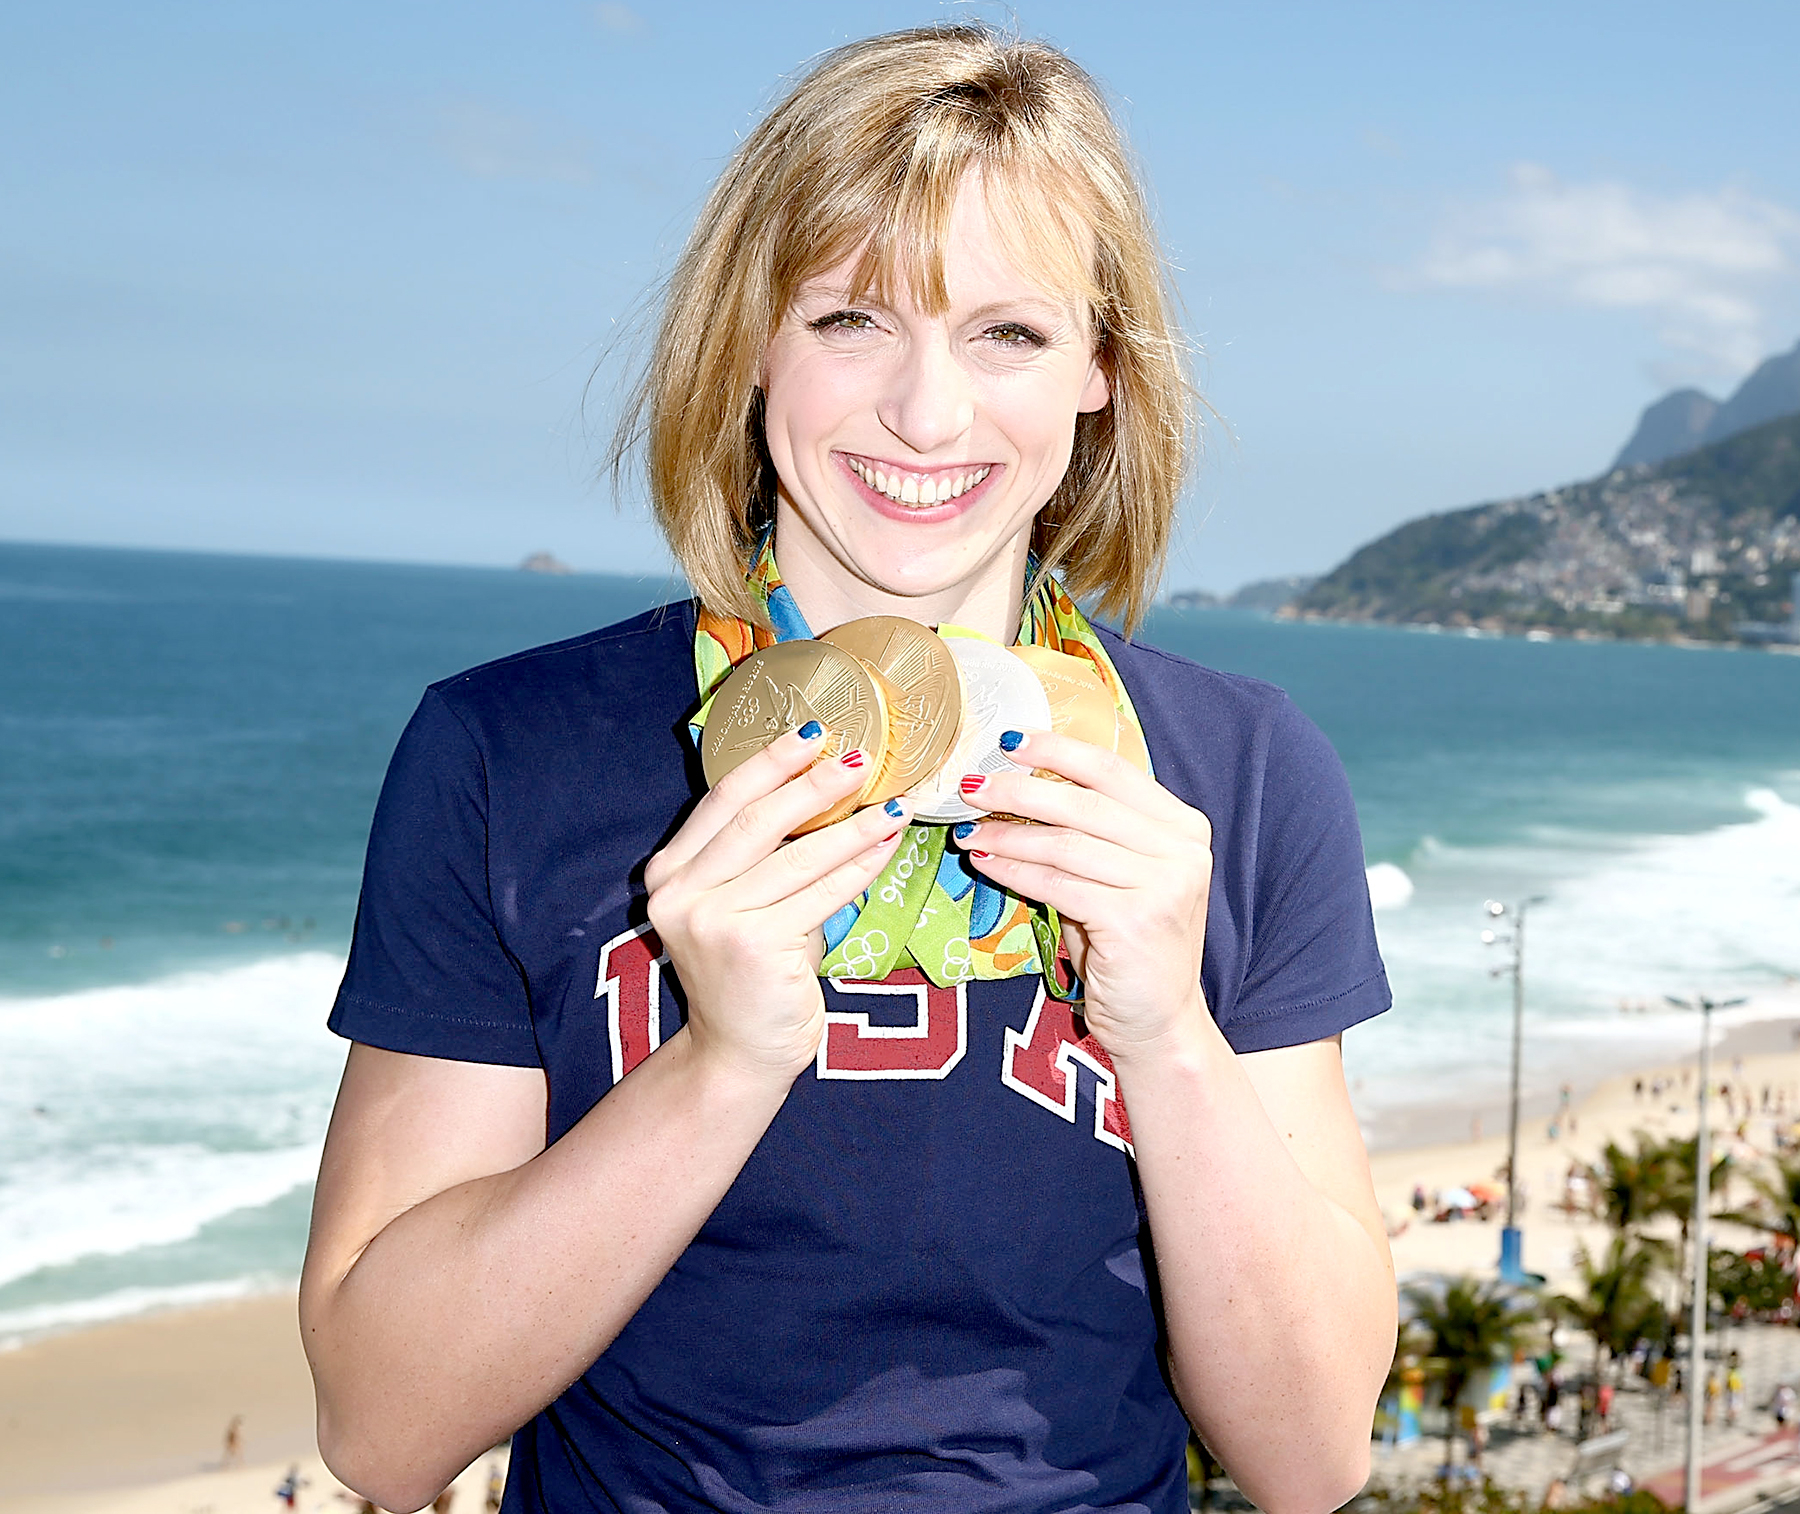 U.S. Olympian Katie Ledecky poses with her Olympic Medals on the Citi Terrace of the USA House at Colegio Sao Paulo on August 13, 2016 in Rio de Janeiro, Brazil.